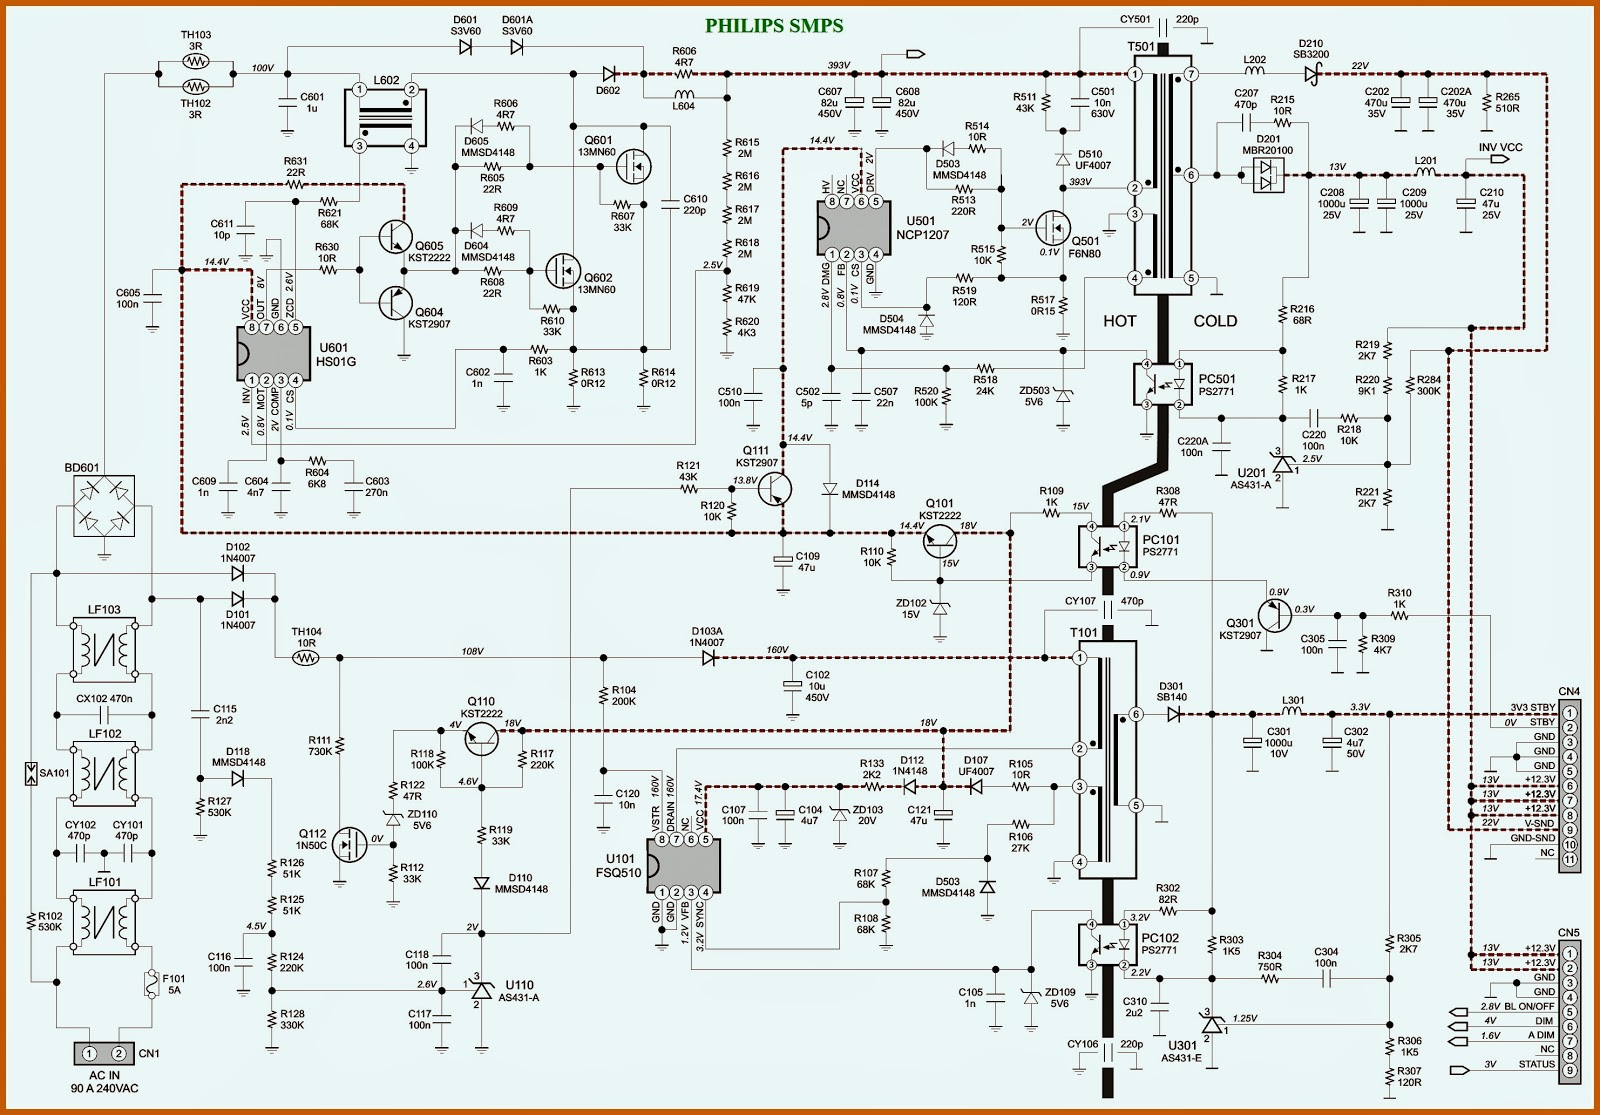 wiring diagram lg tv wiring diagram lg smart tv connection diagram [ 1600 x 1115 Pixel ]